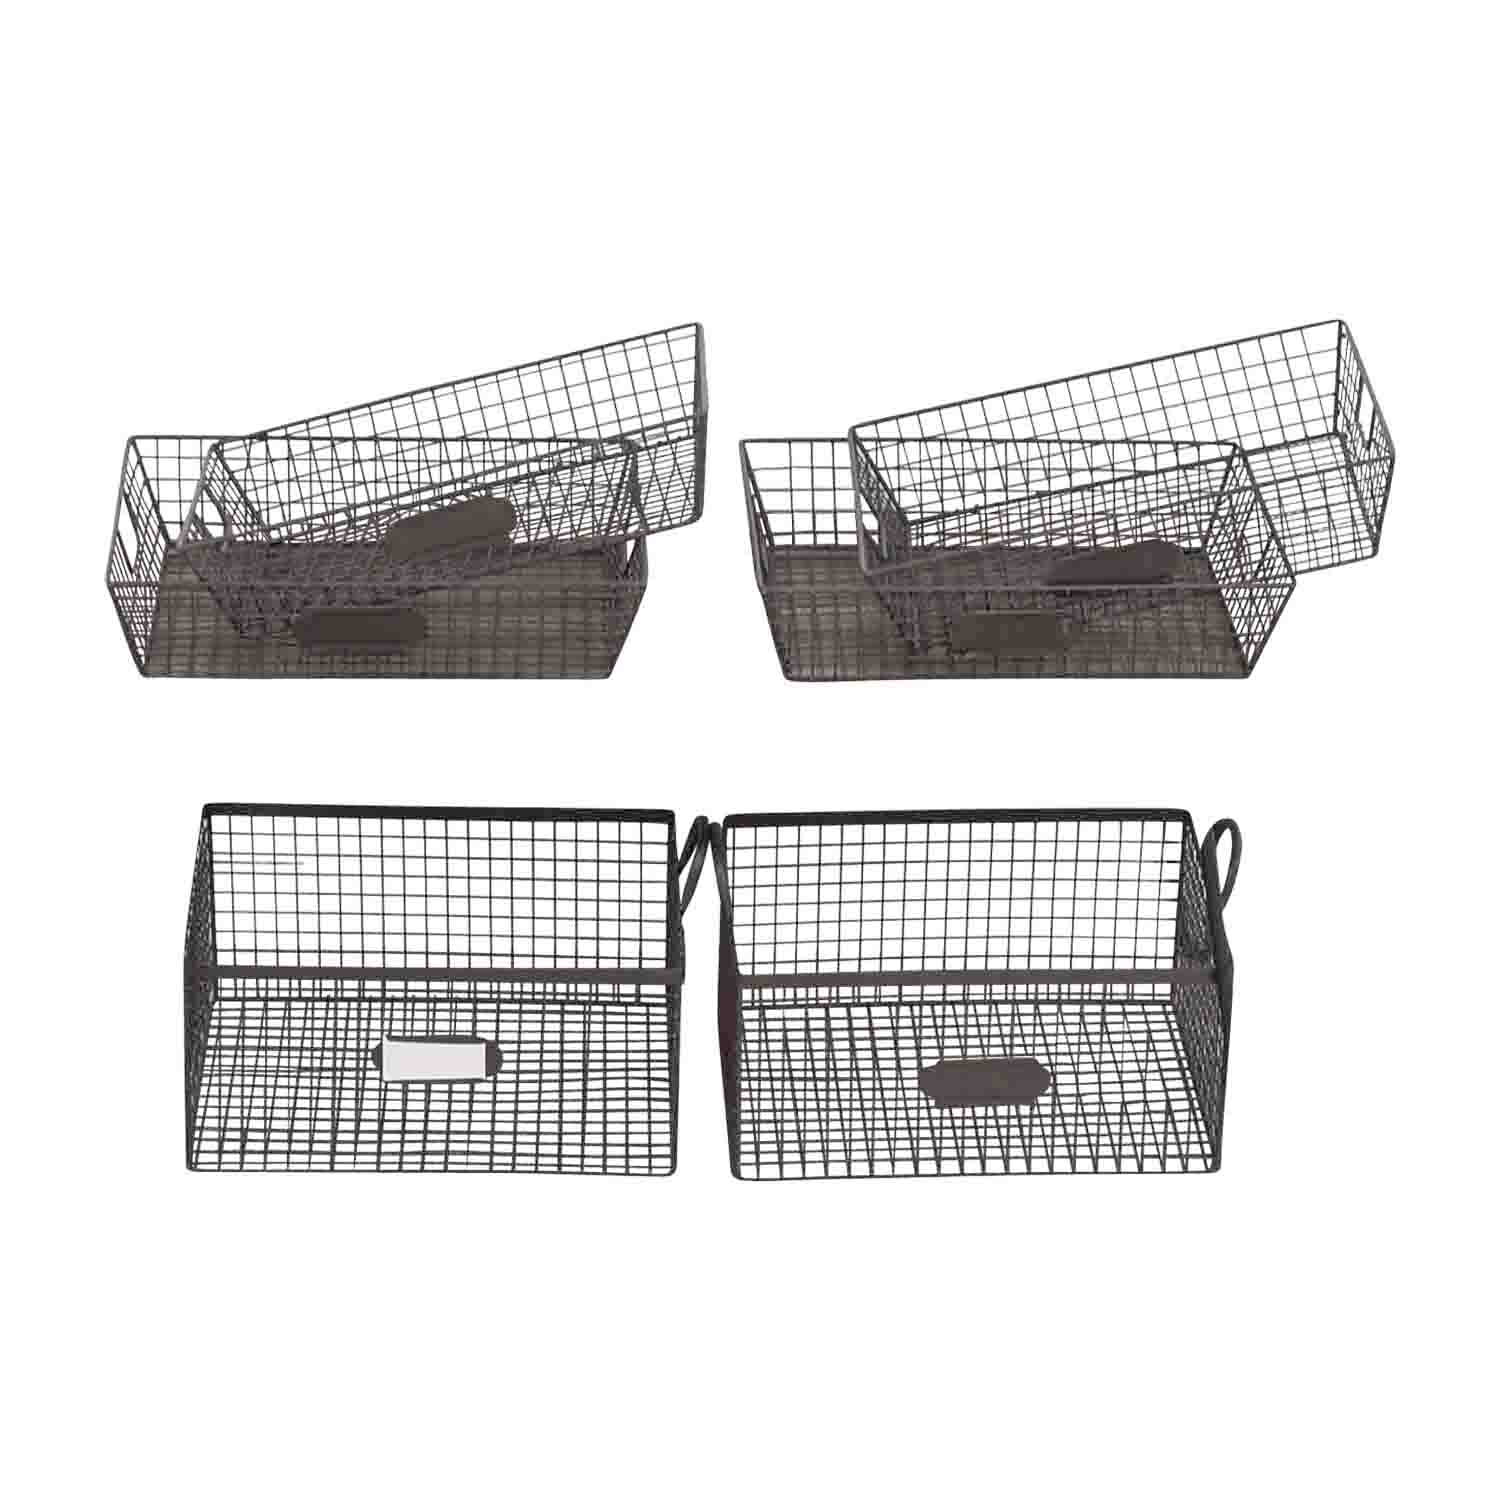 buy Set of Metal Office Baskets Decorative Accents